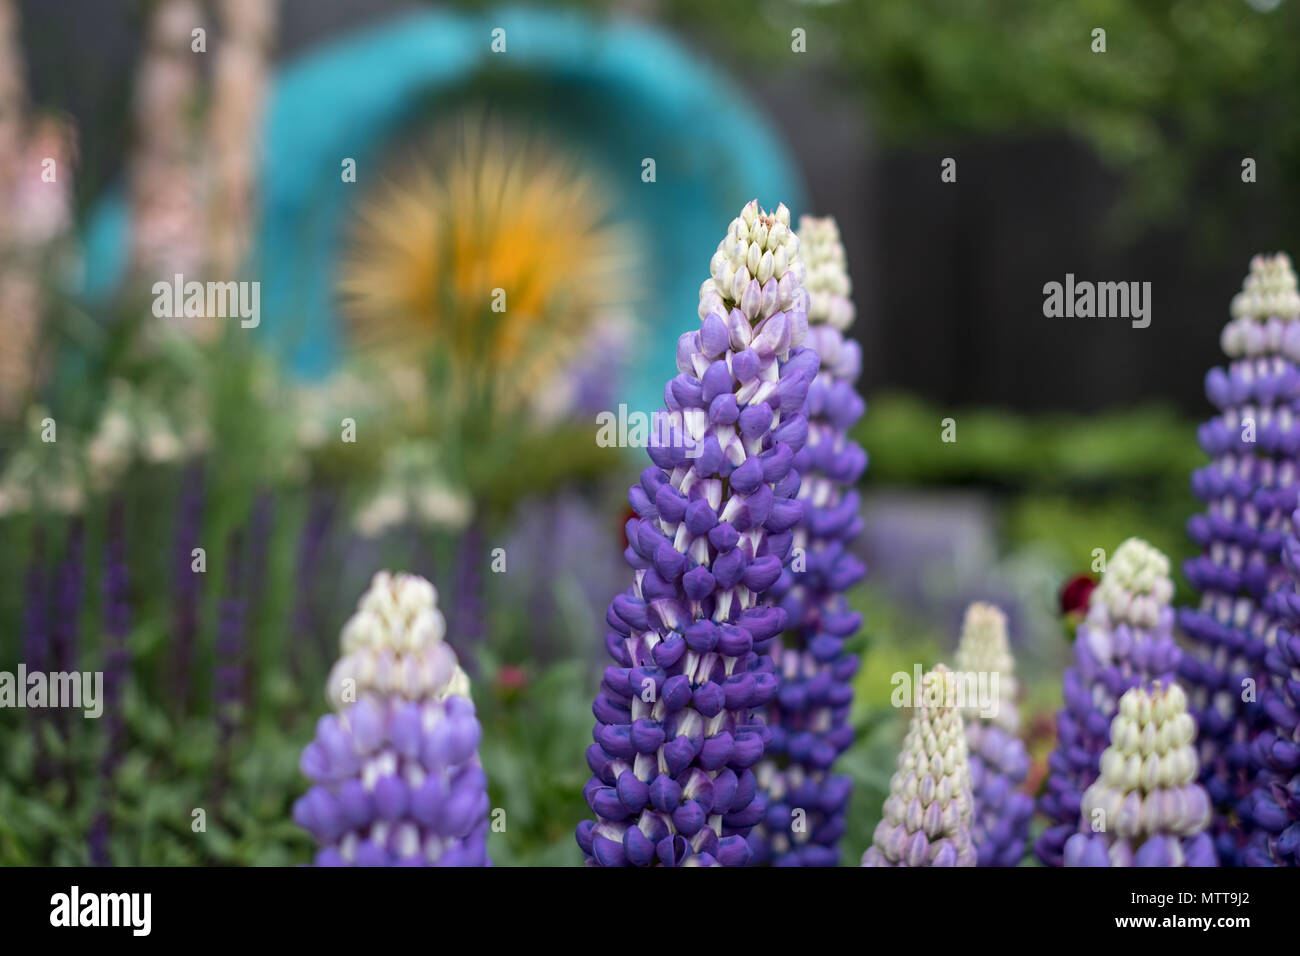 London UK,2018. Stunning purple, blue lupins in foreground at award winning garden at Chelsea Flower Show, hosted by the Royal Horticultural Society. - Stock Image